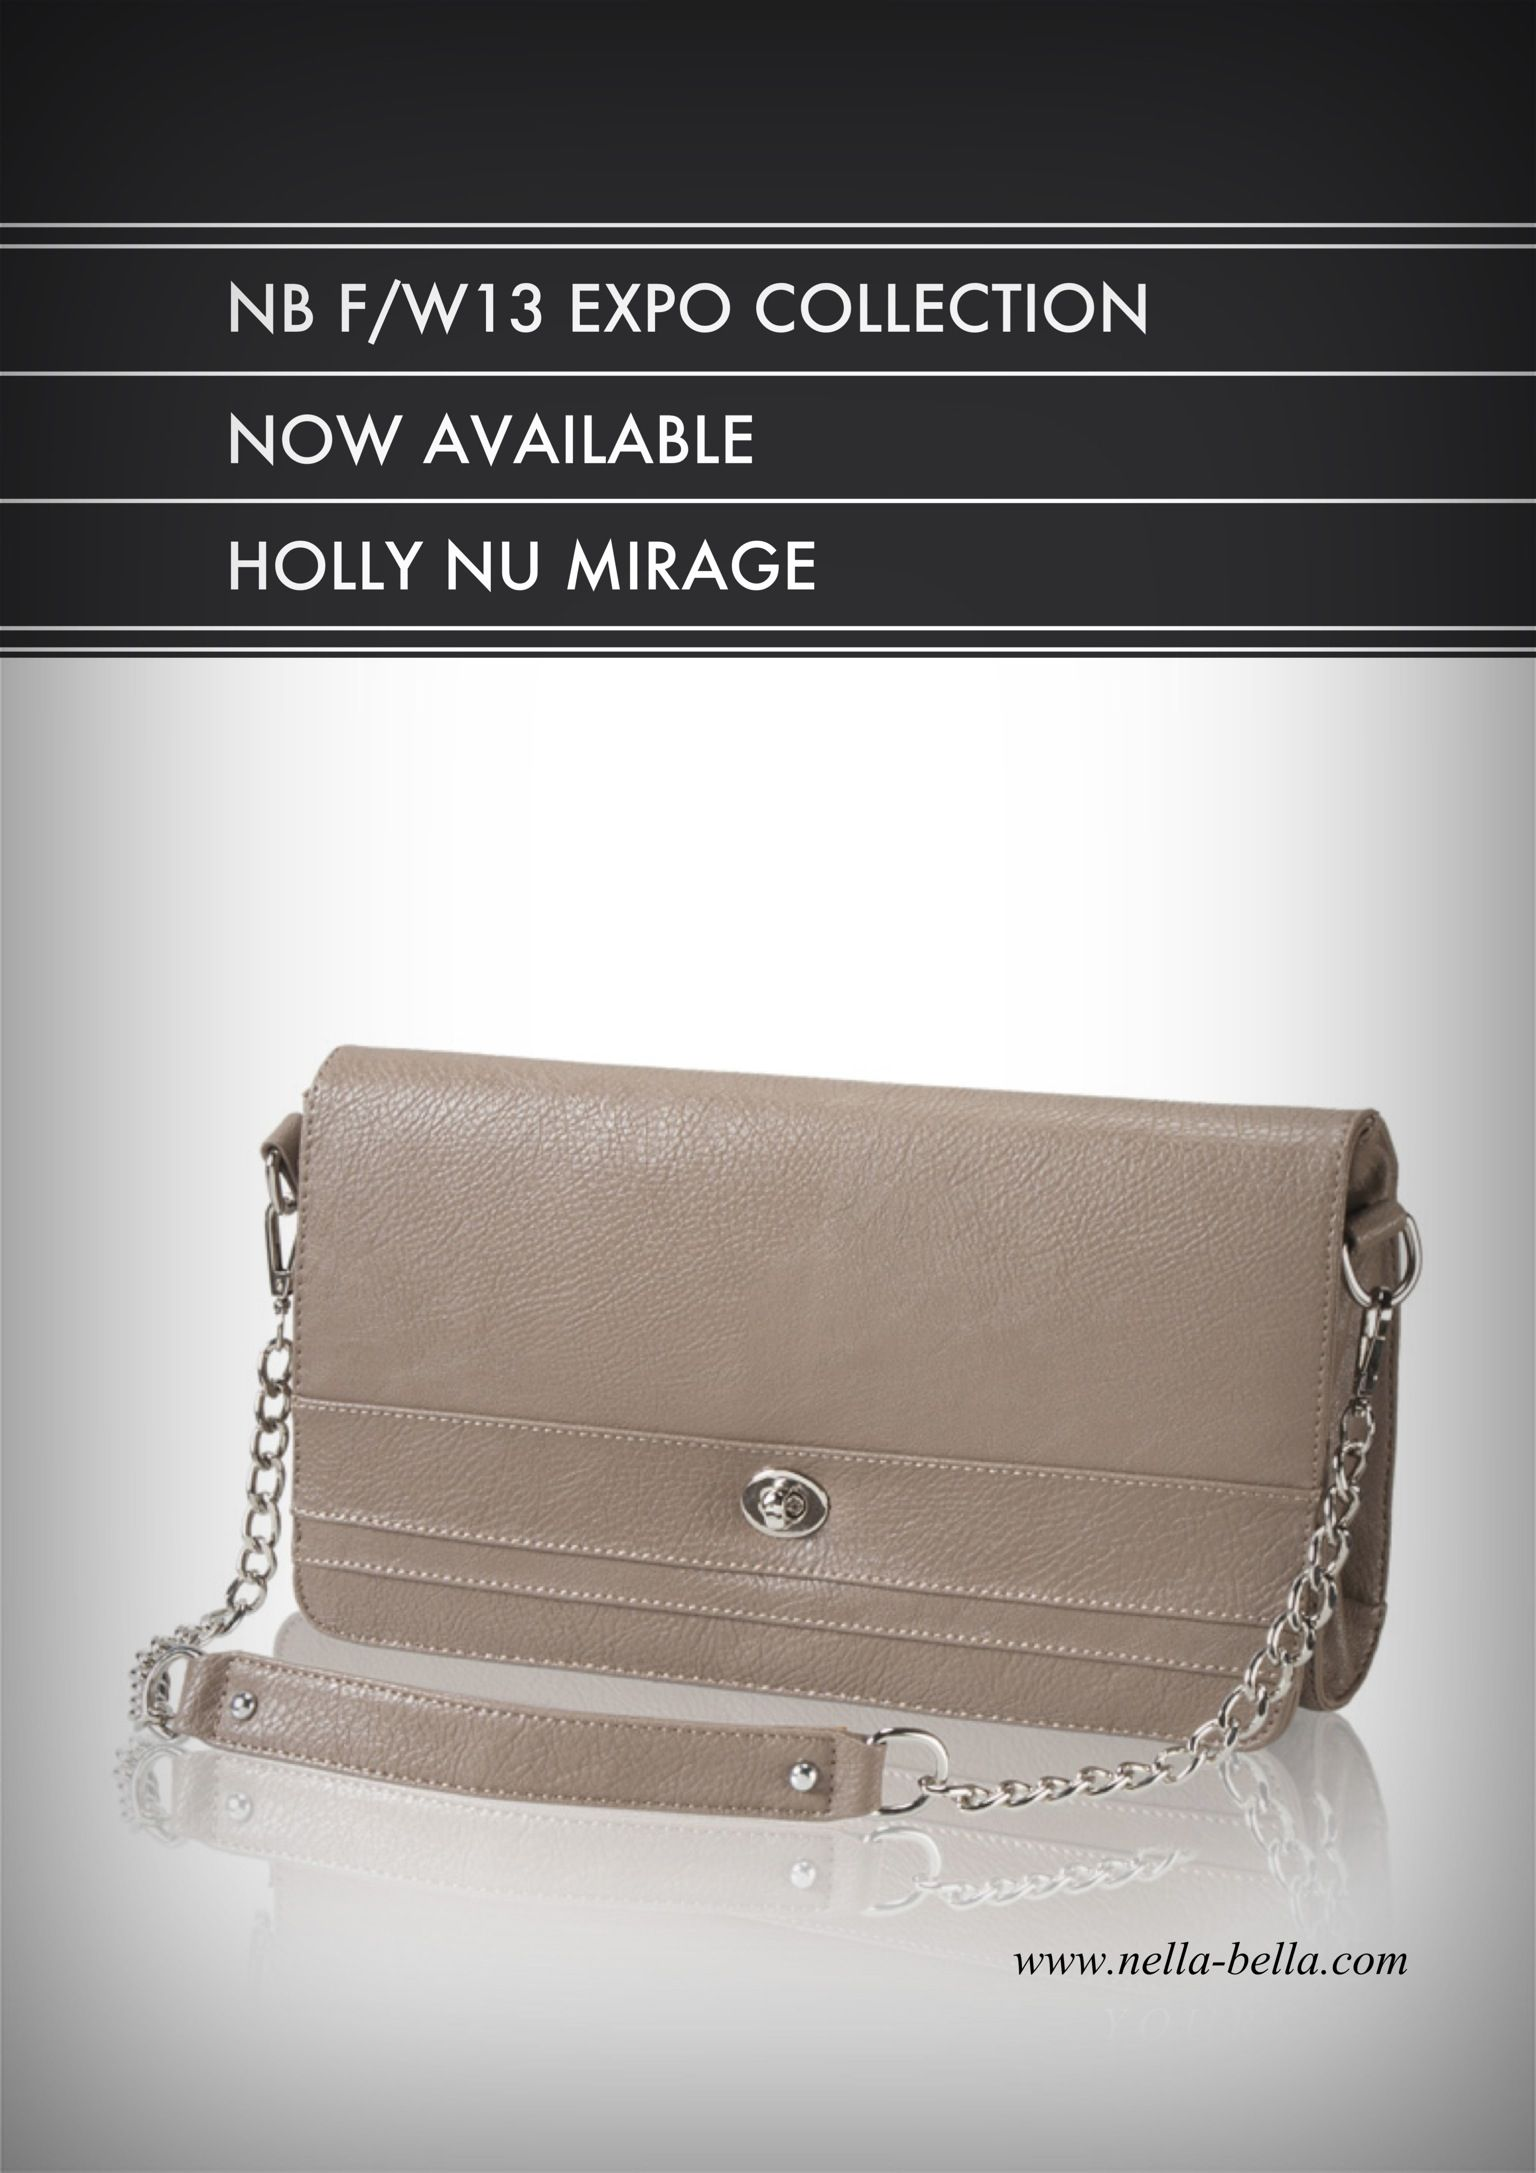 Holly Nella Bella F/W13 Expo Collection  #clutch #handbags